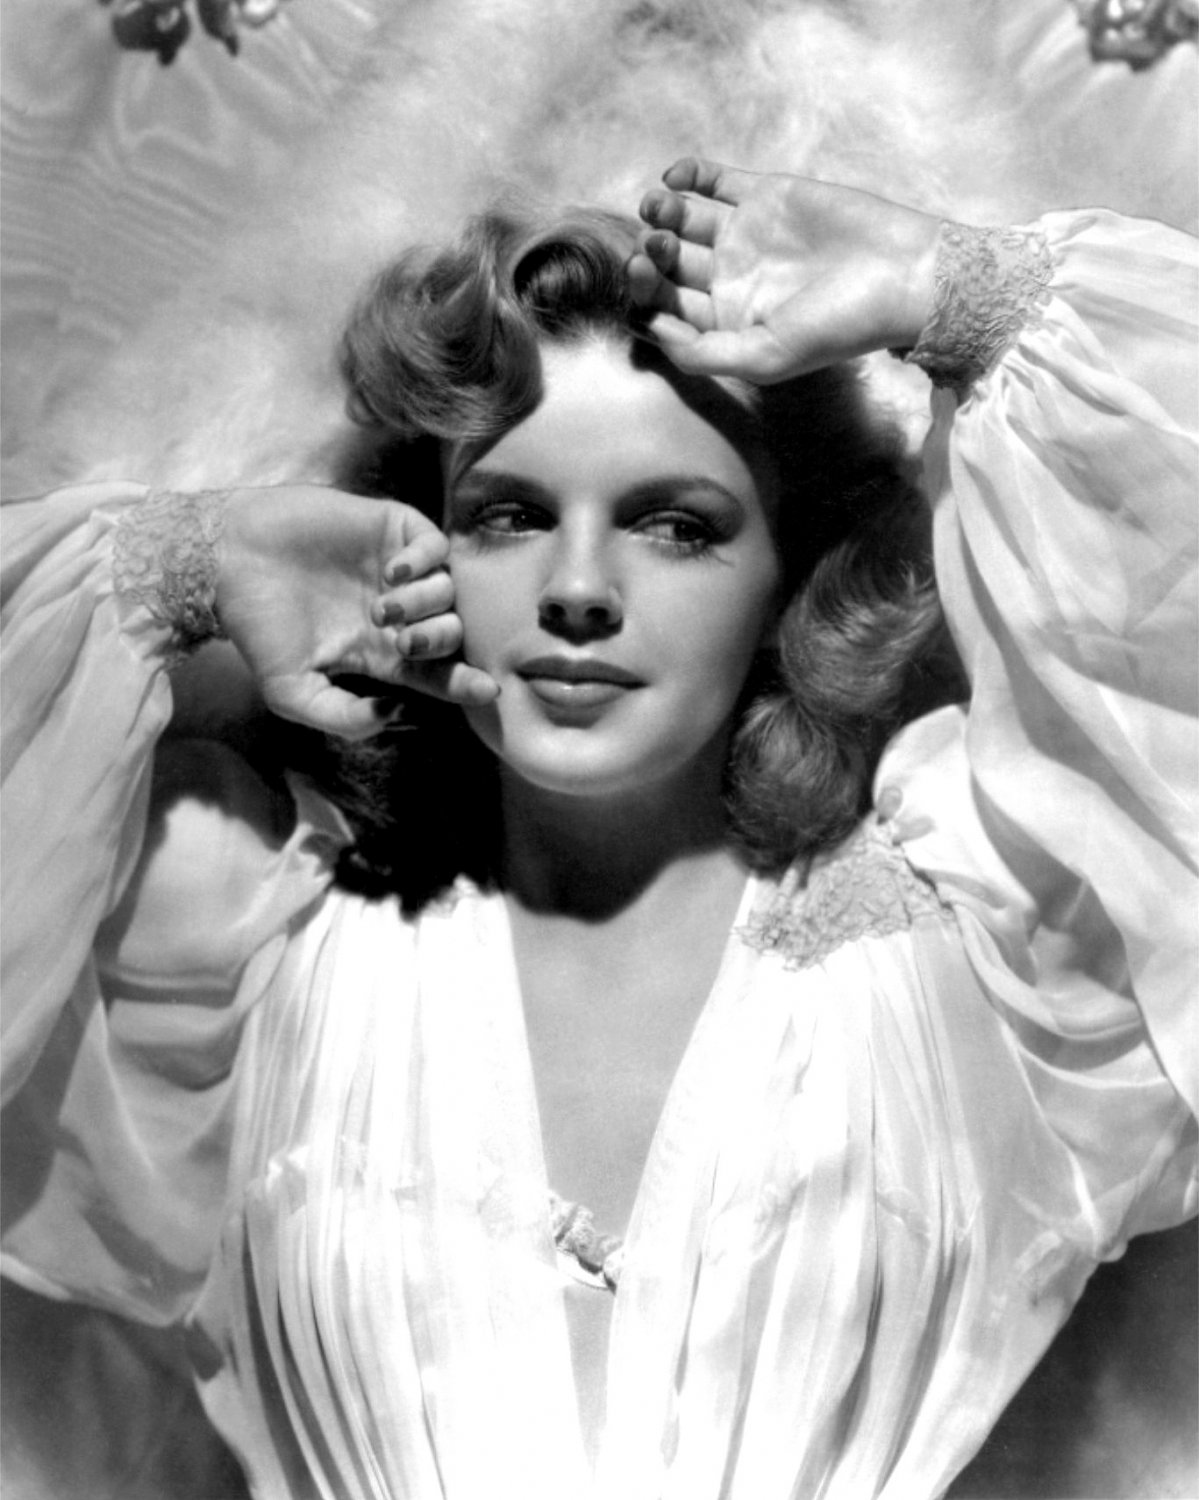 JUDY GARLAND IN THE MUSICAL 'PRESENTING LILY MARS' 8X10 PUBLICITY PHOTO (BB-935)